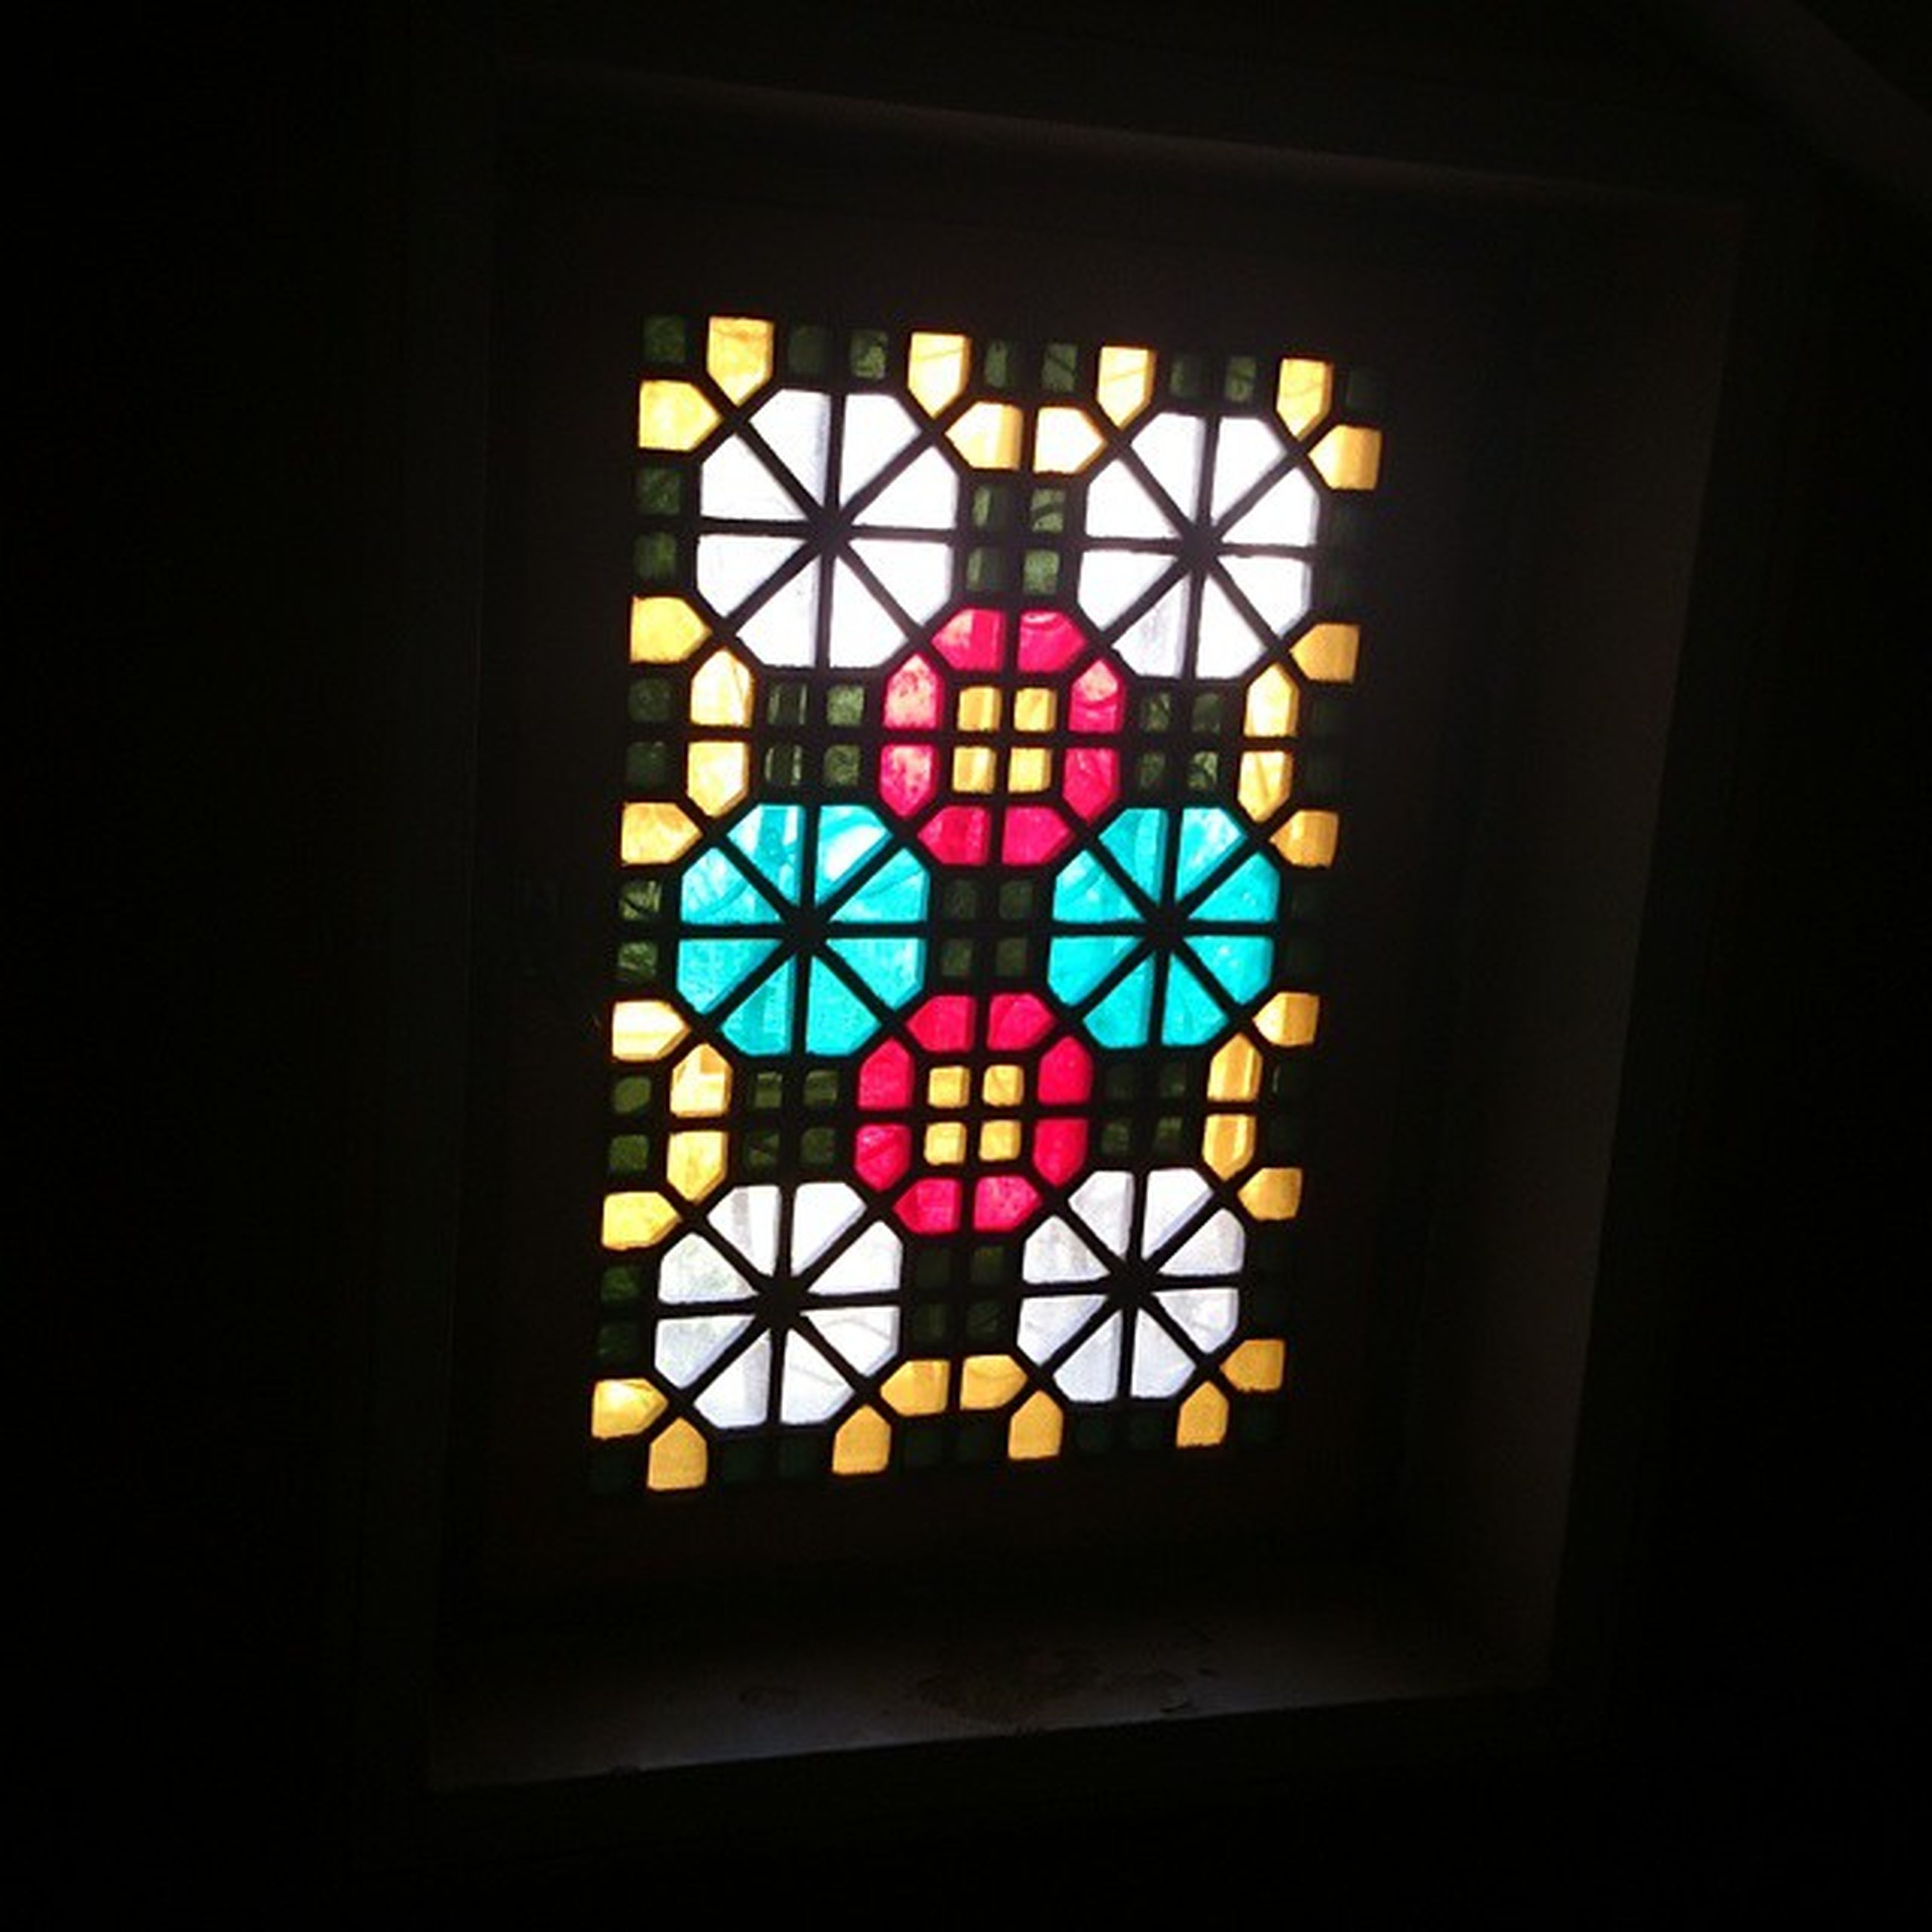 indoors, window, illuminated, glass - material, stained glass, multi colored, low angle view, pattern, decoration, built structure, transparent, glowing, architecture, design, lighting equipment, geometric shape, no people, home interior, dark, religion